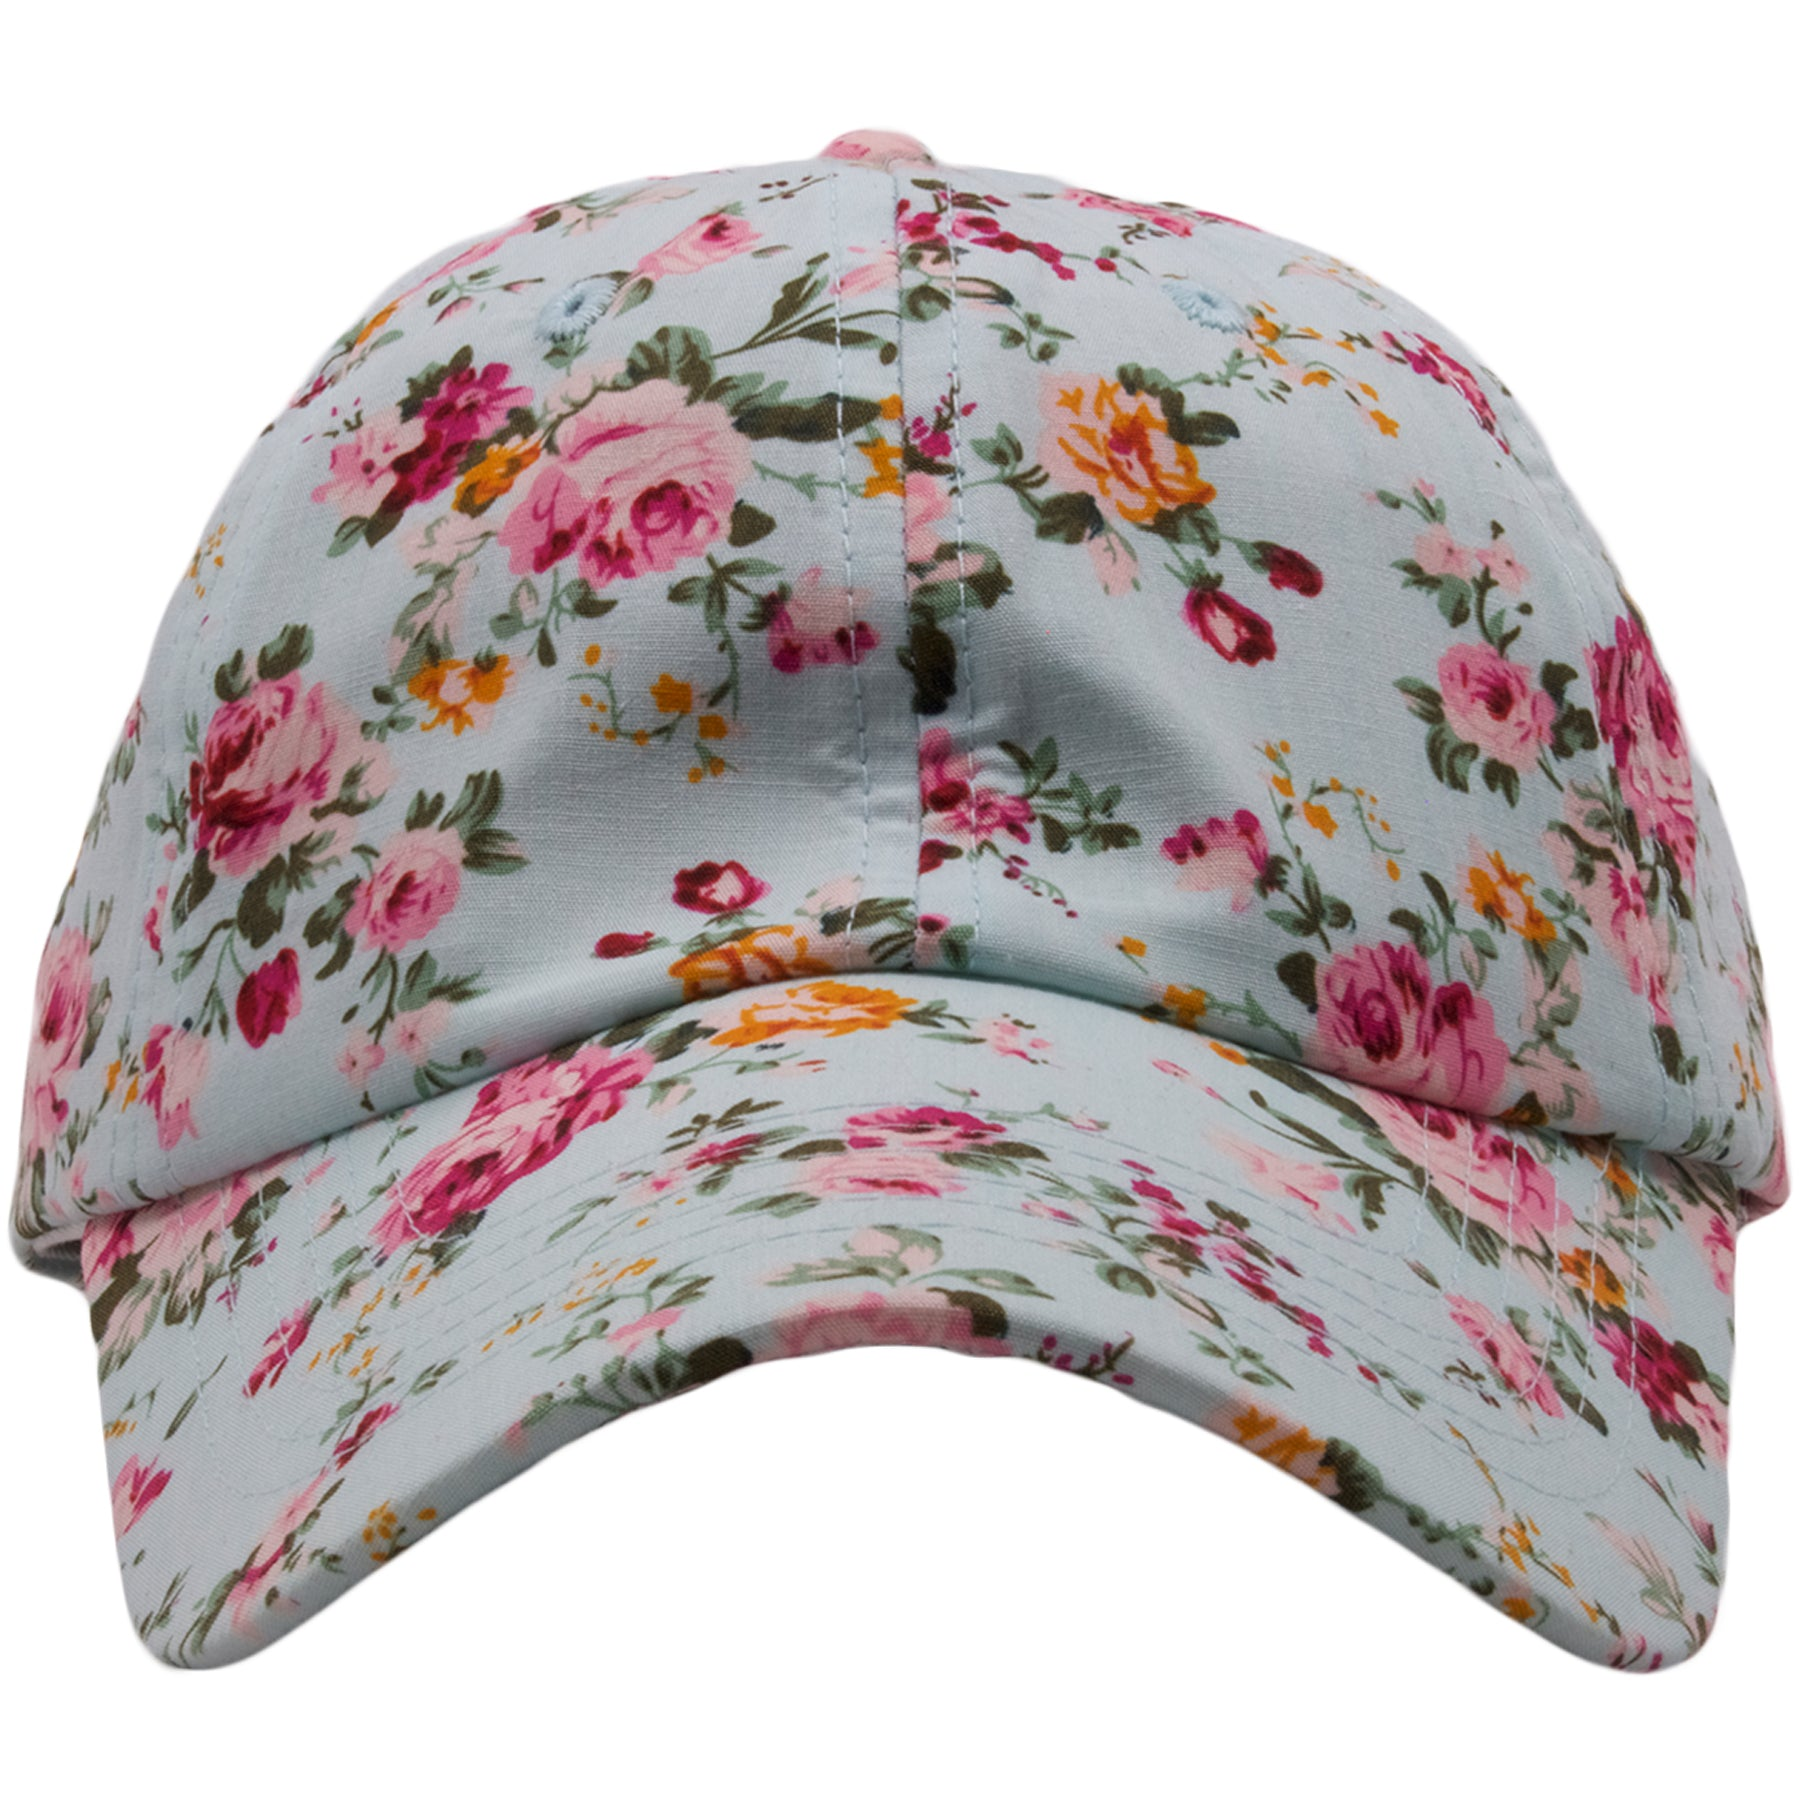 1a69b77ef66 The Foot Clan Light Blue Floral Blank Adjustable Ball Cap features a light  blue floral pattern